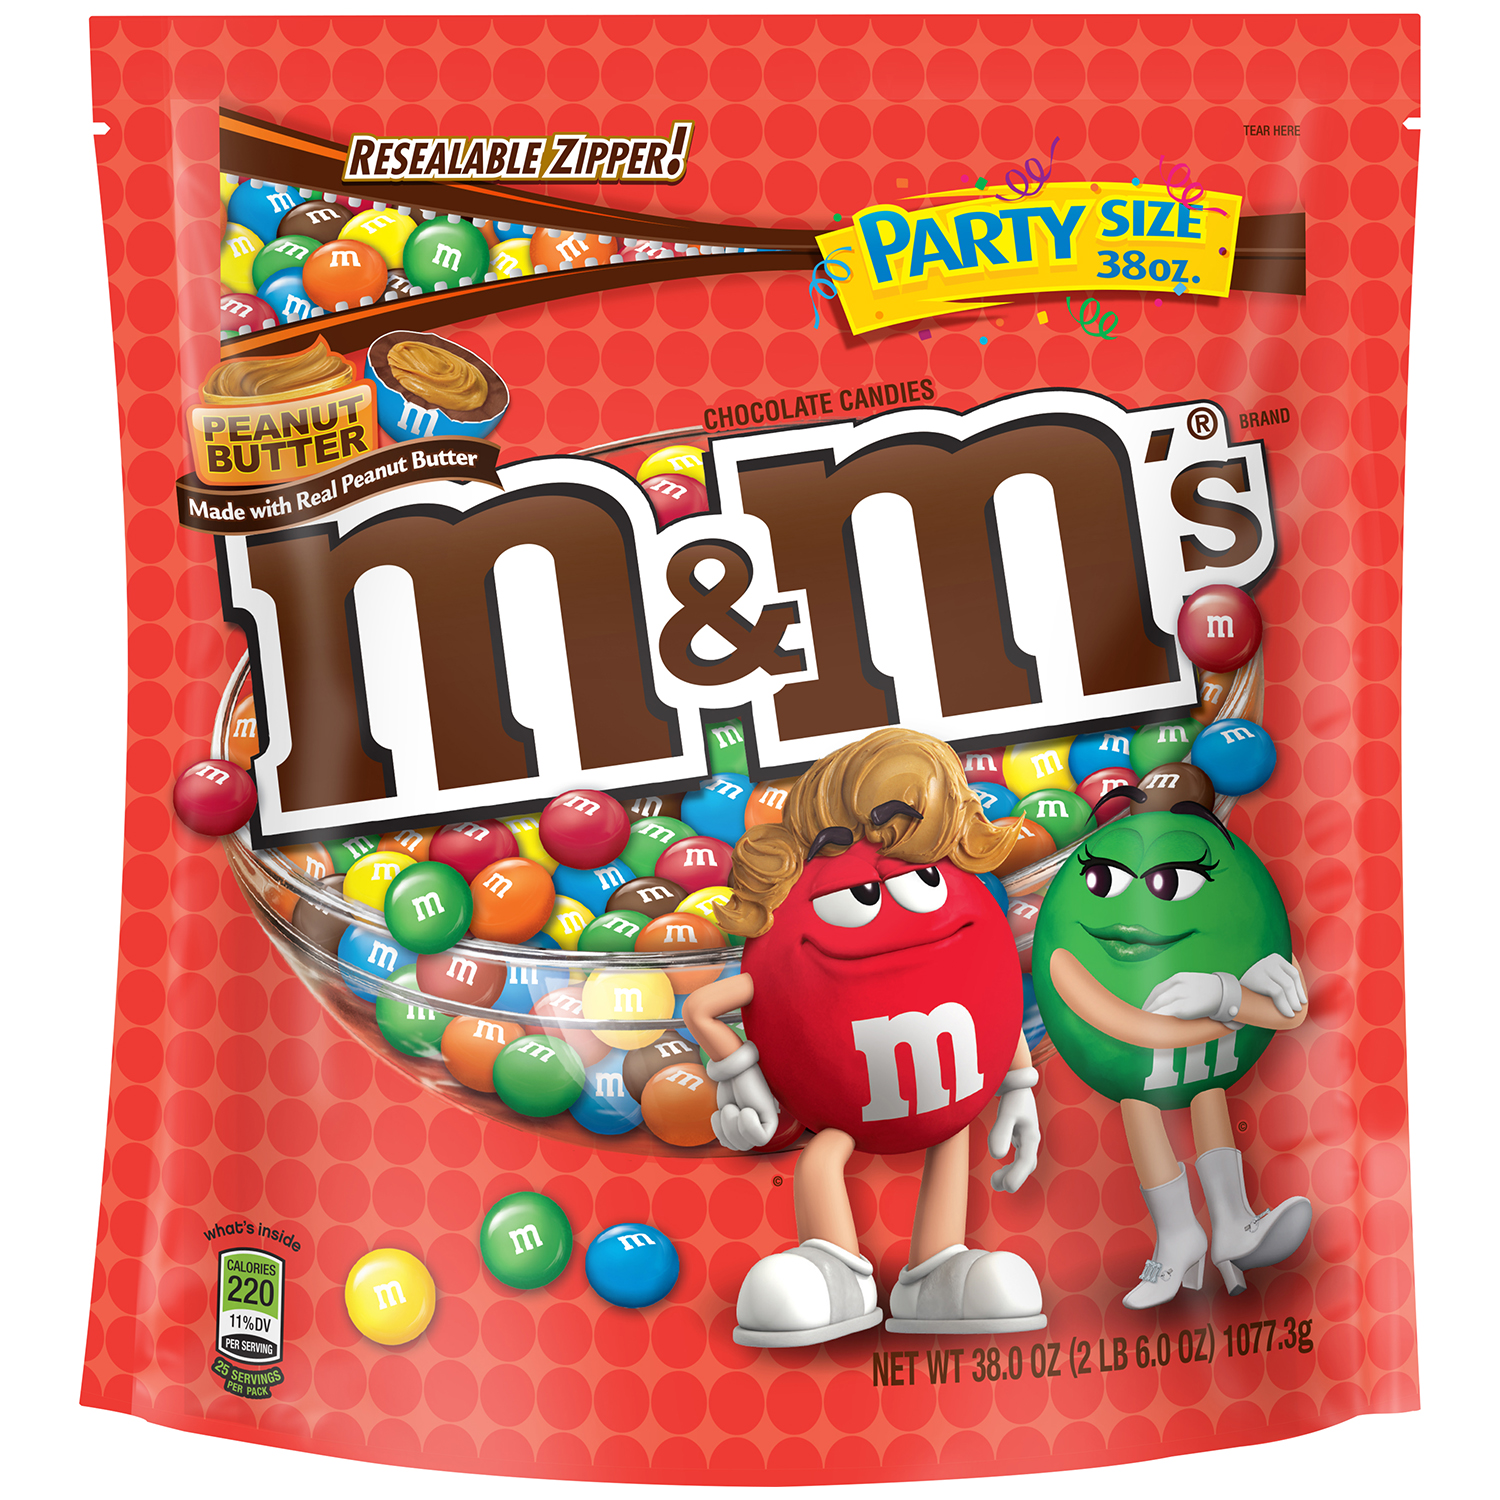 M&M's Peanut Butter Chocolate Candy, Party Size, 38 Oz